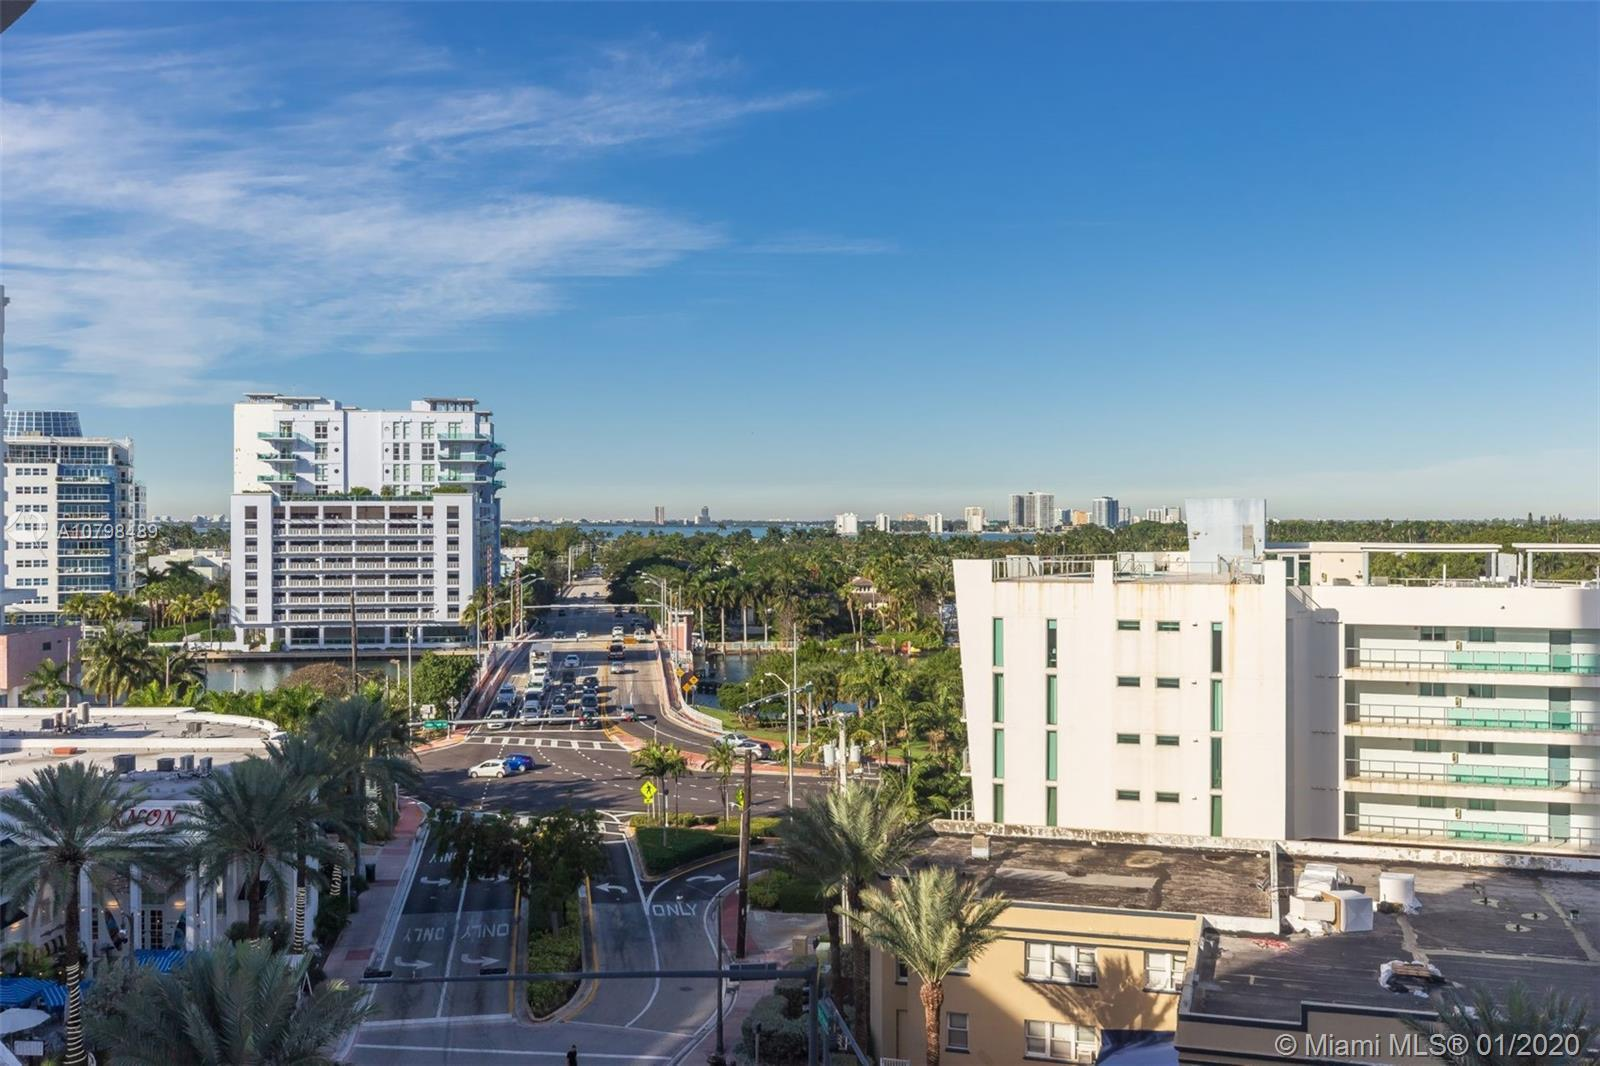 LOWEST PRICED 2BR IN THE BUILDING! Recently renovated 2 bedroom / 2 bathroom at La Gorce Palace. New